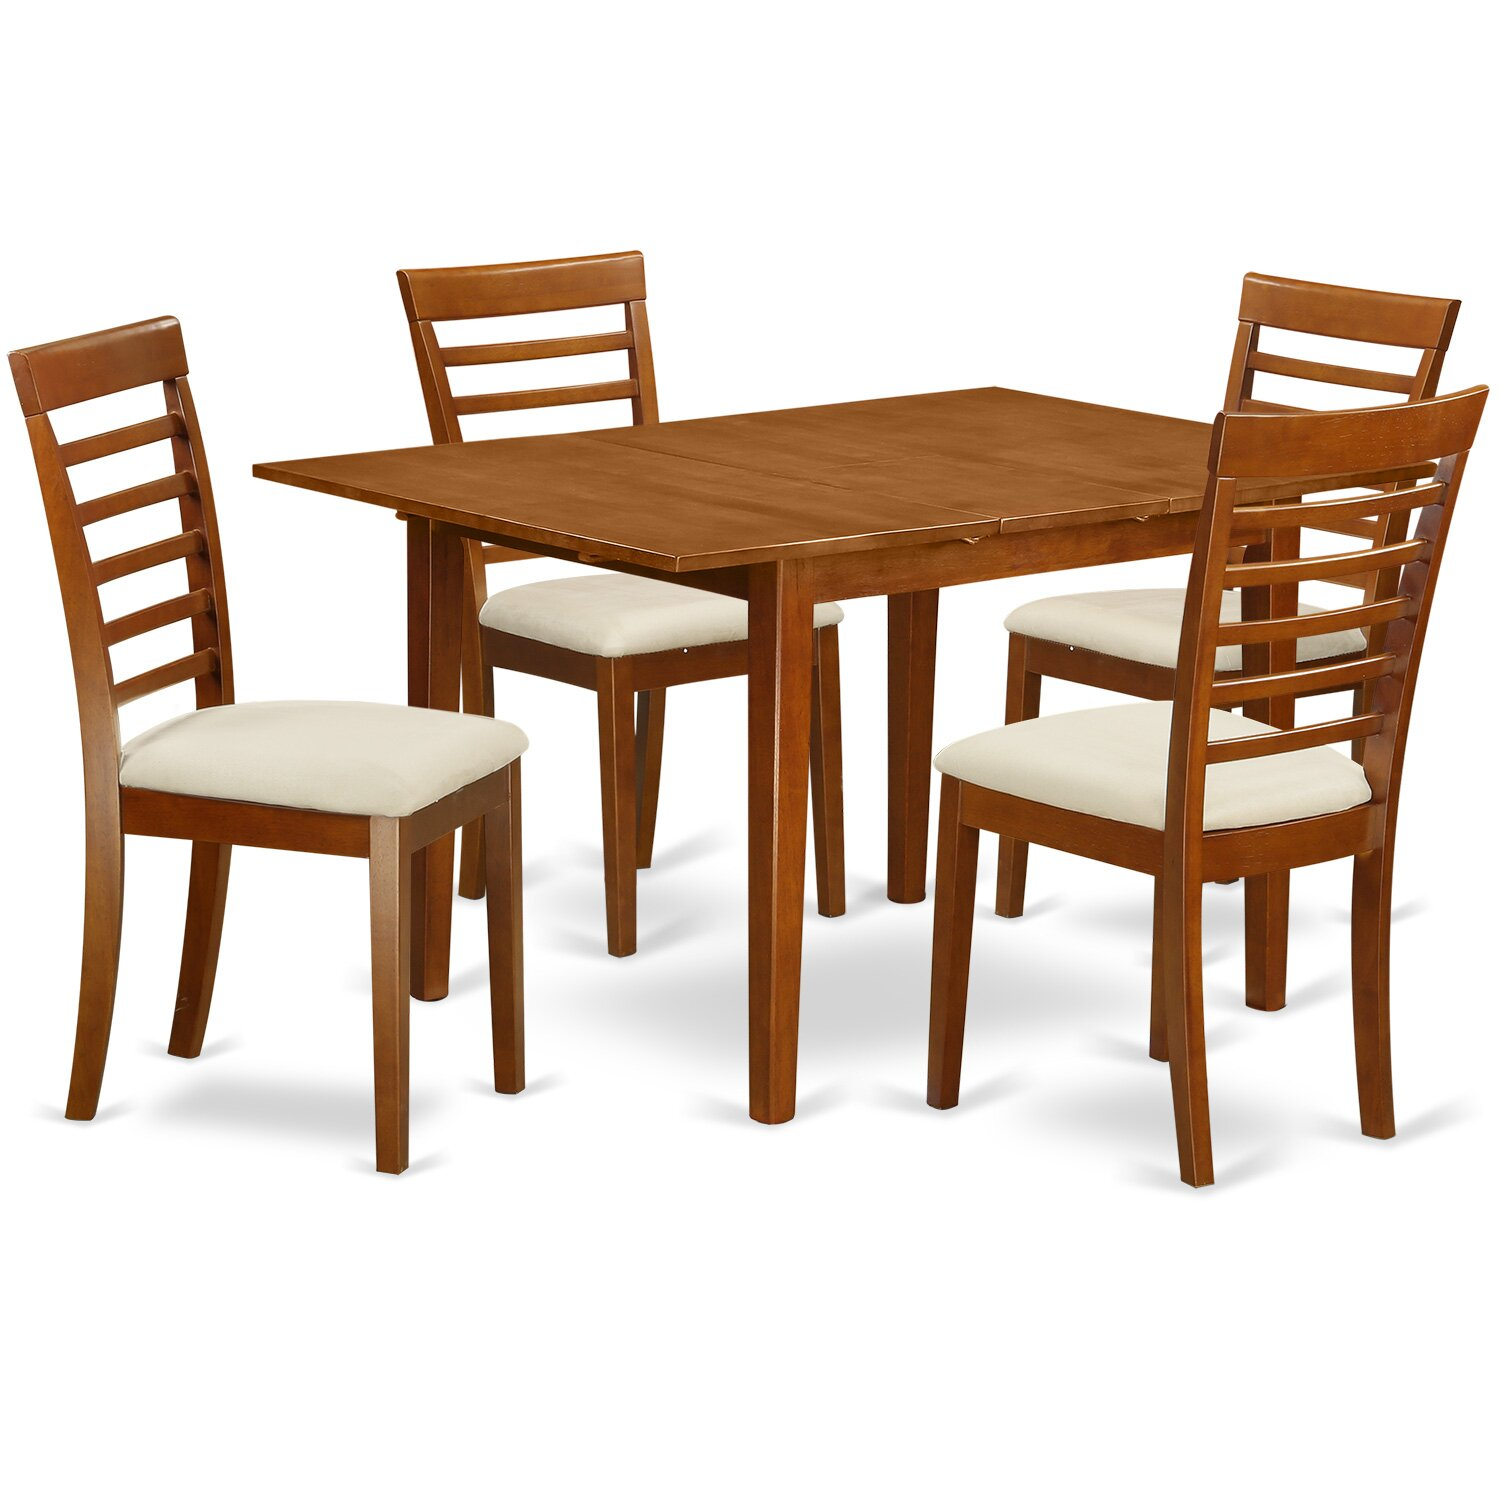 East west milan 5 piece dining set wayfair for Small table and stool set